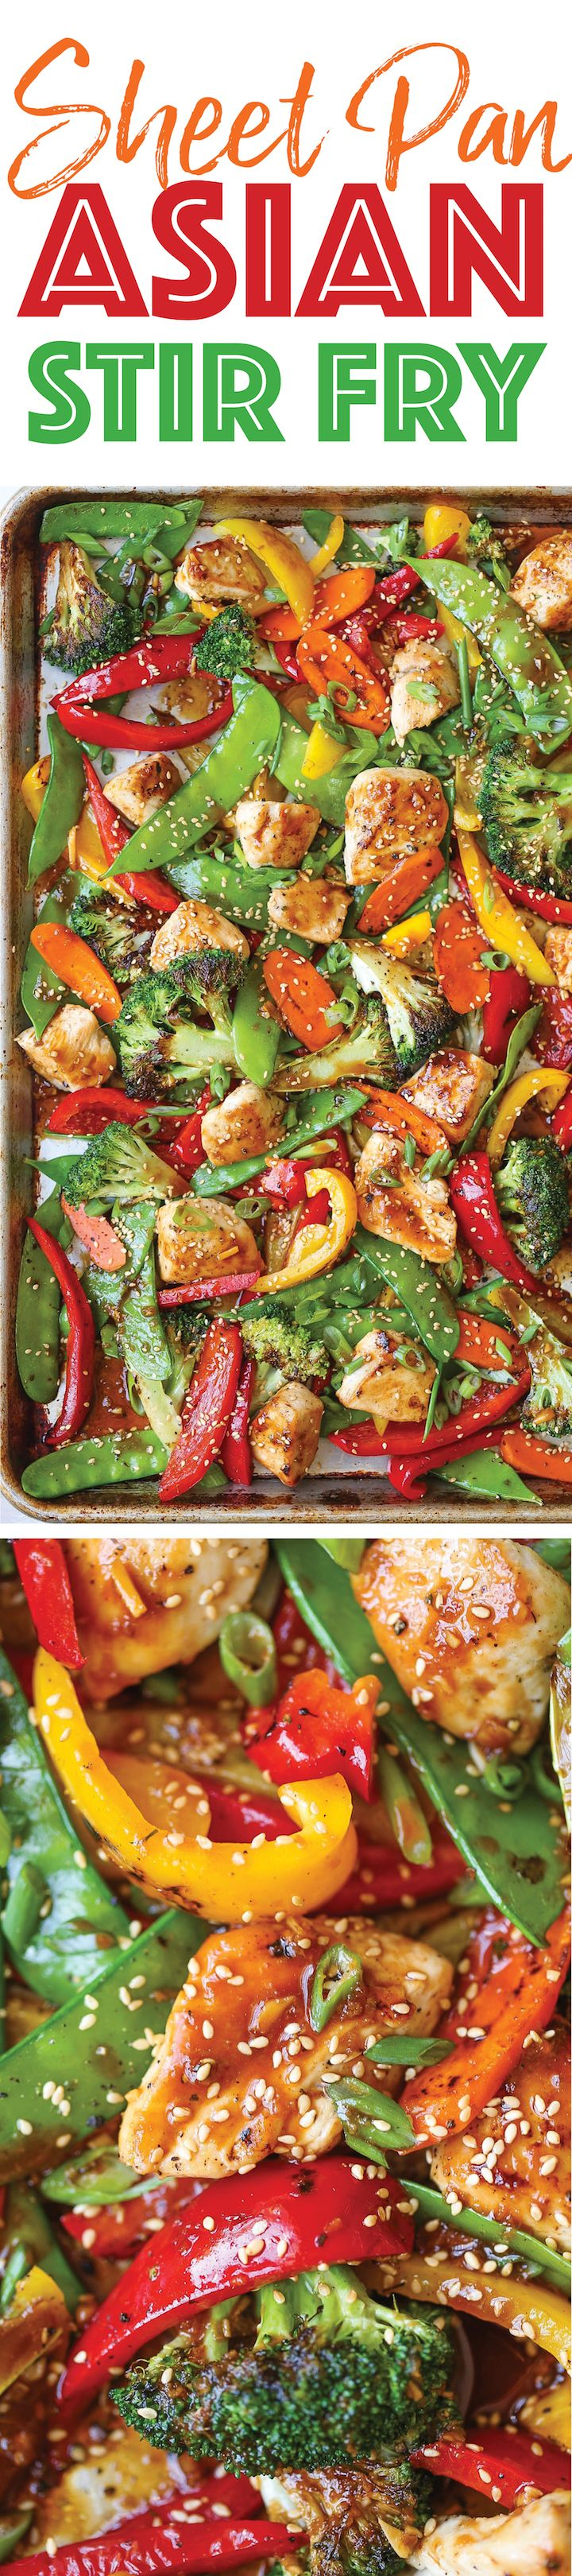 Sheet Pan Asian Stir Fry - Damn Delicious